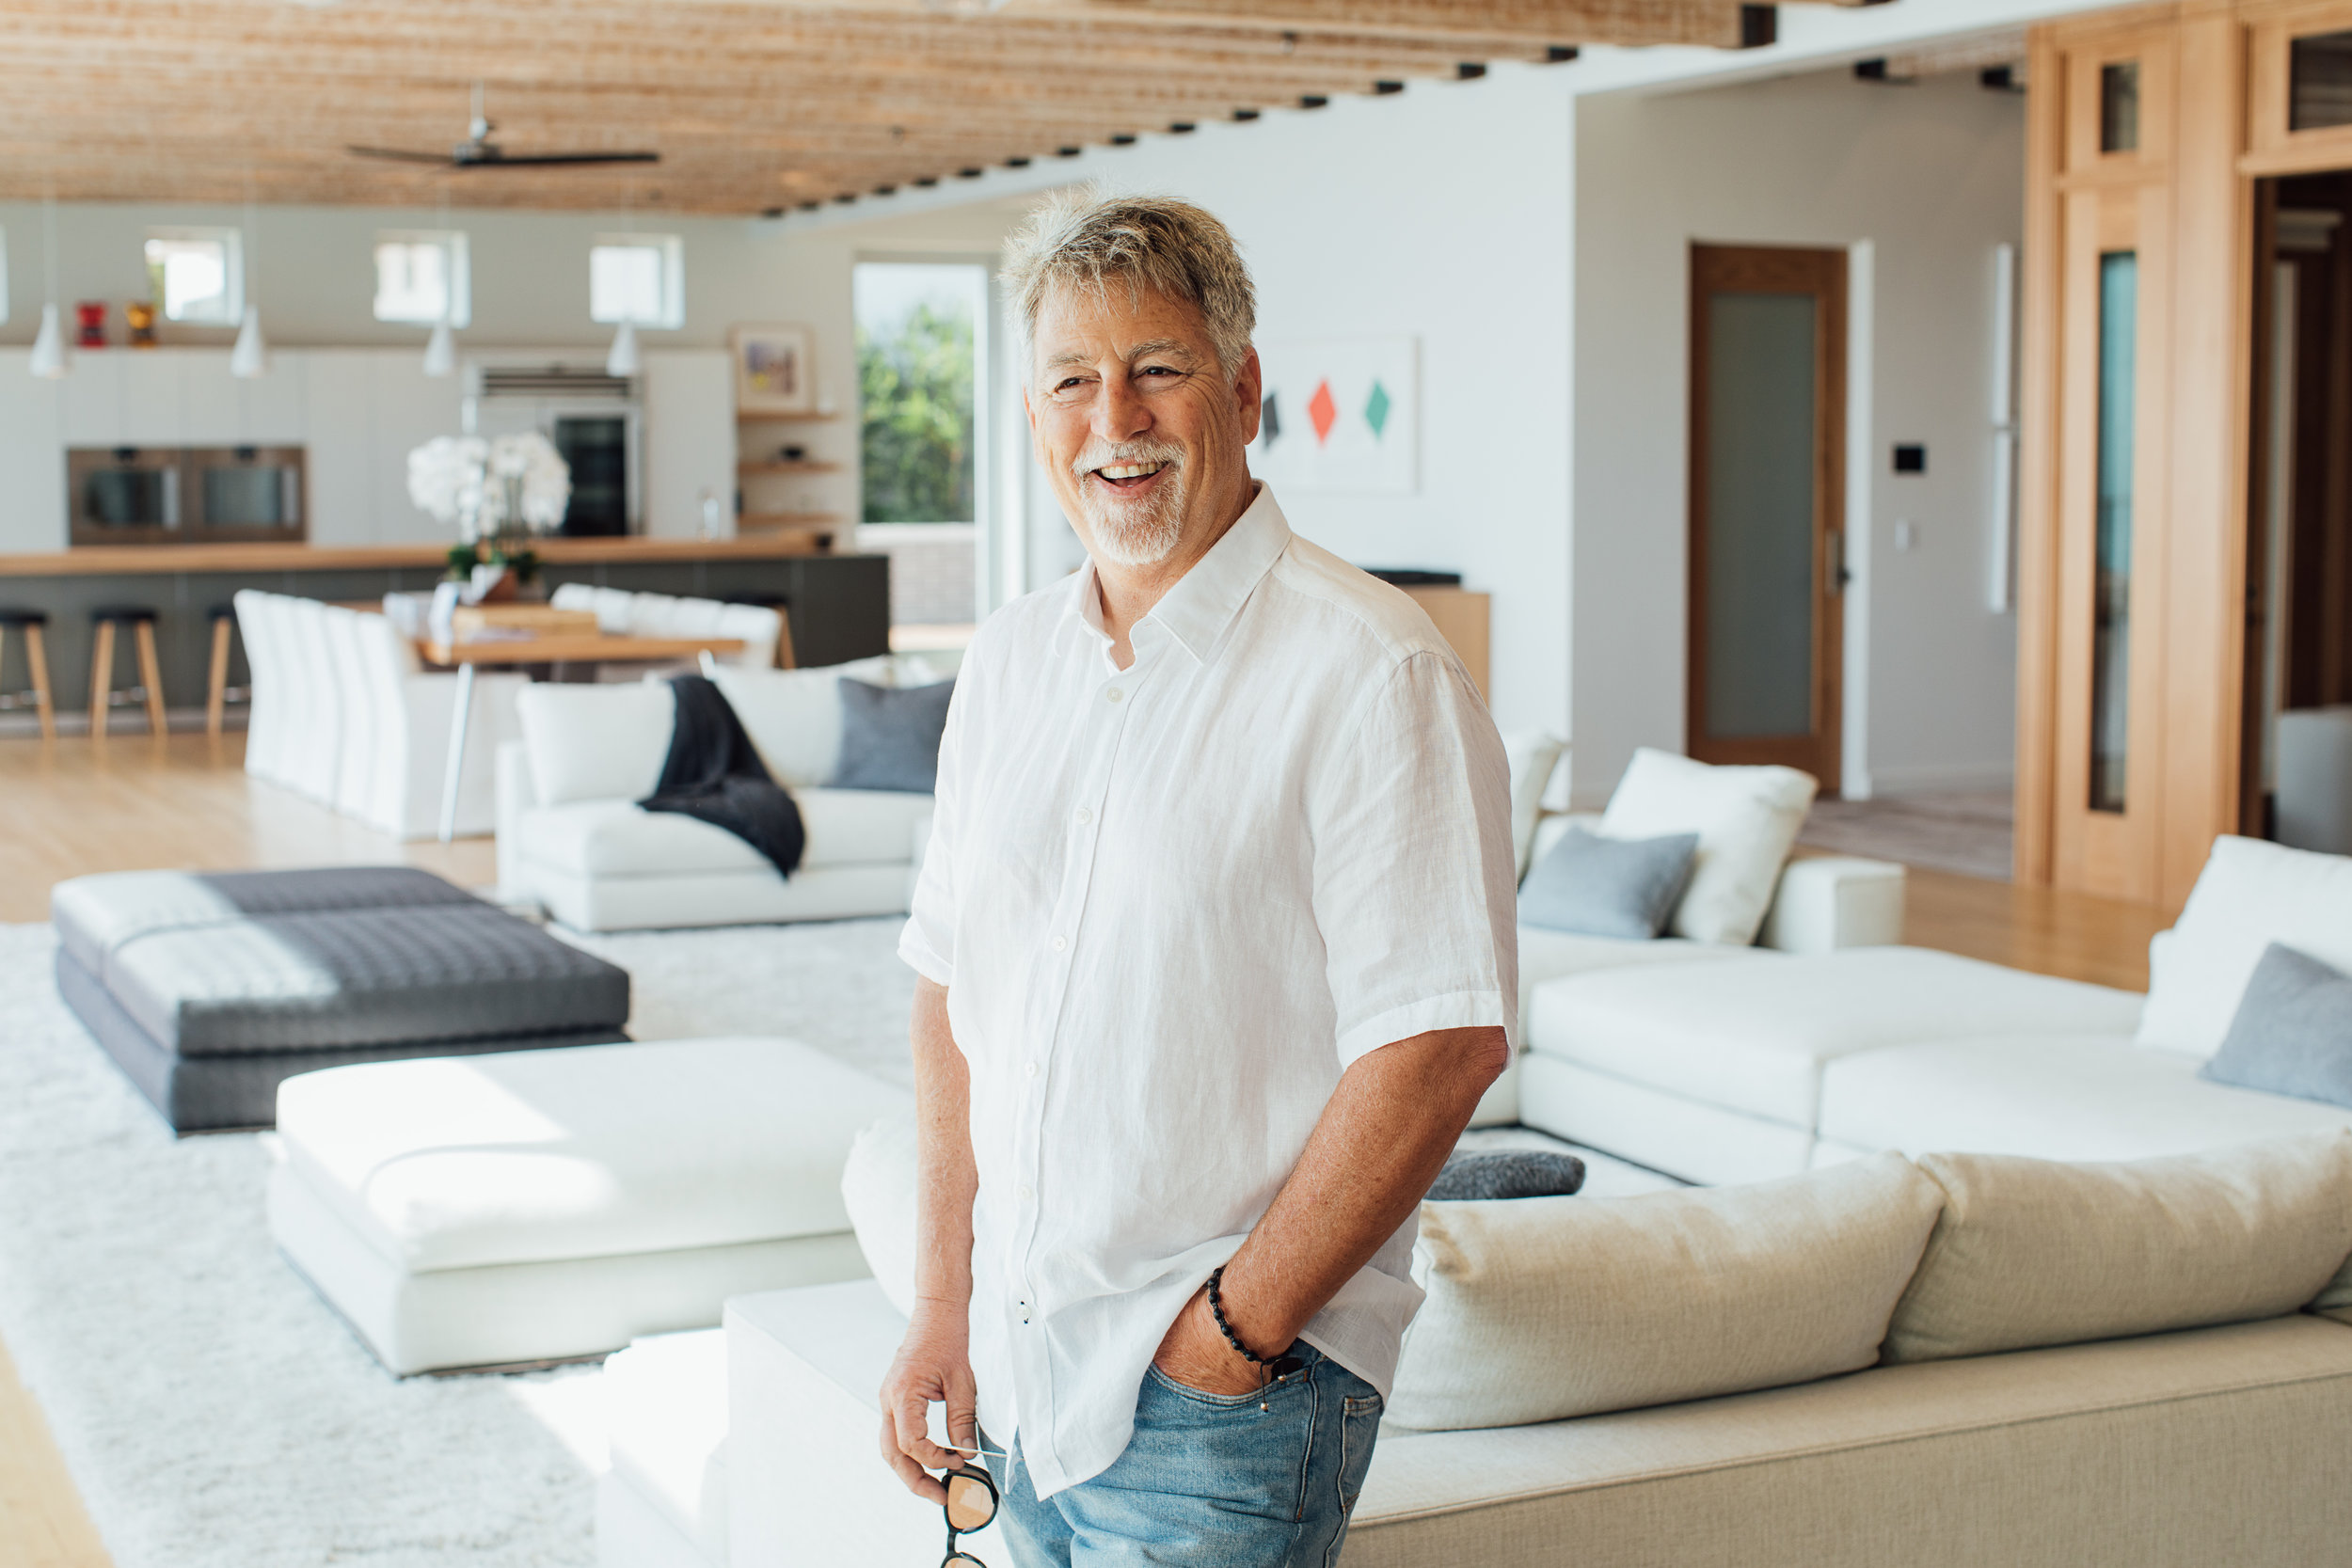 Gillen at his landmark Malibu home, The New Castle.